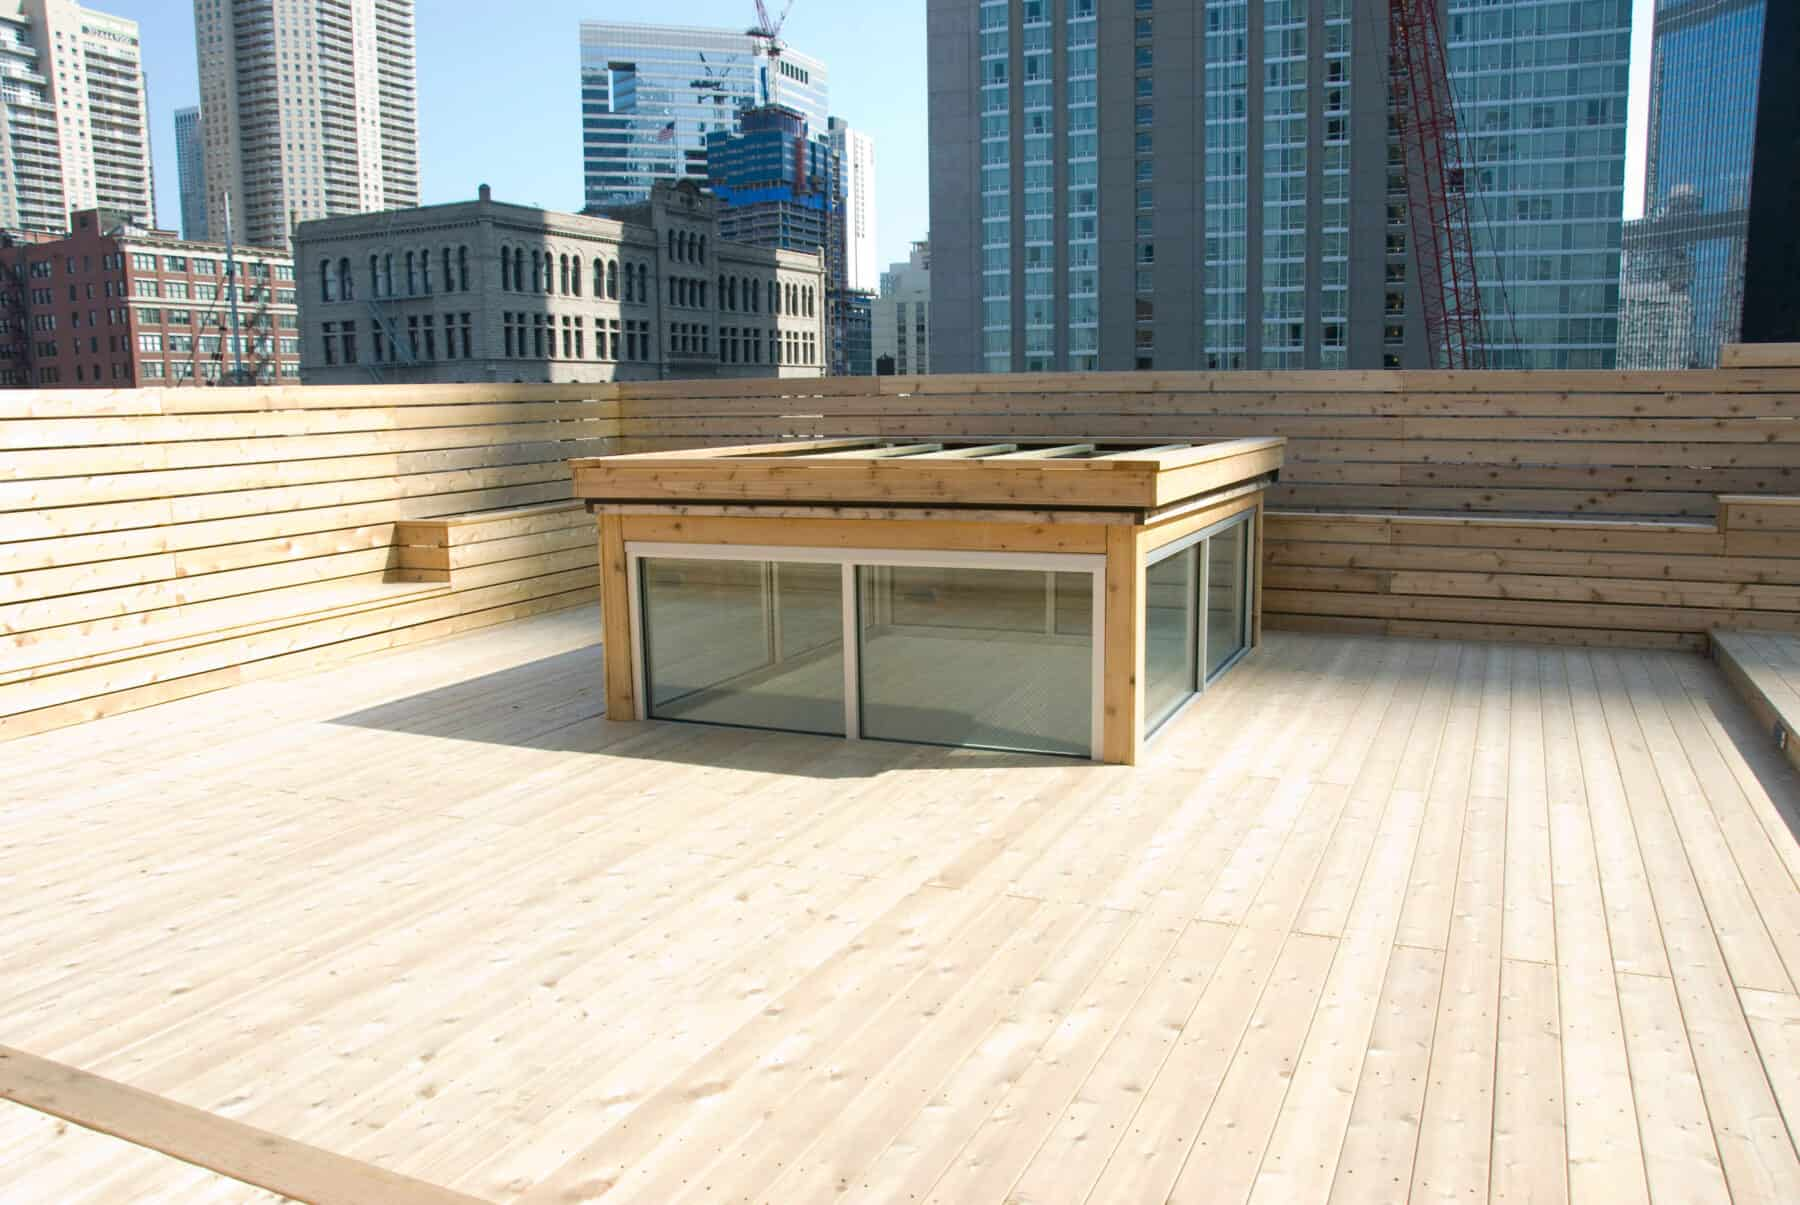 Custom Rooftop Deck with Wood Plant boxes, Skylight, Fence and Walkways from Construction Specialty Projects by Commercial Builder & General Contractor Structural Enterprises